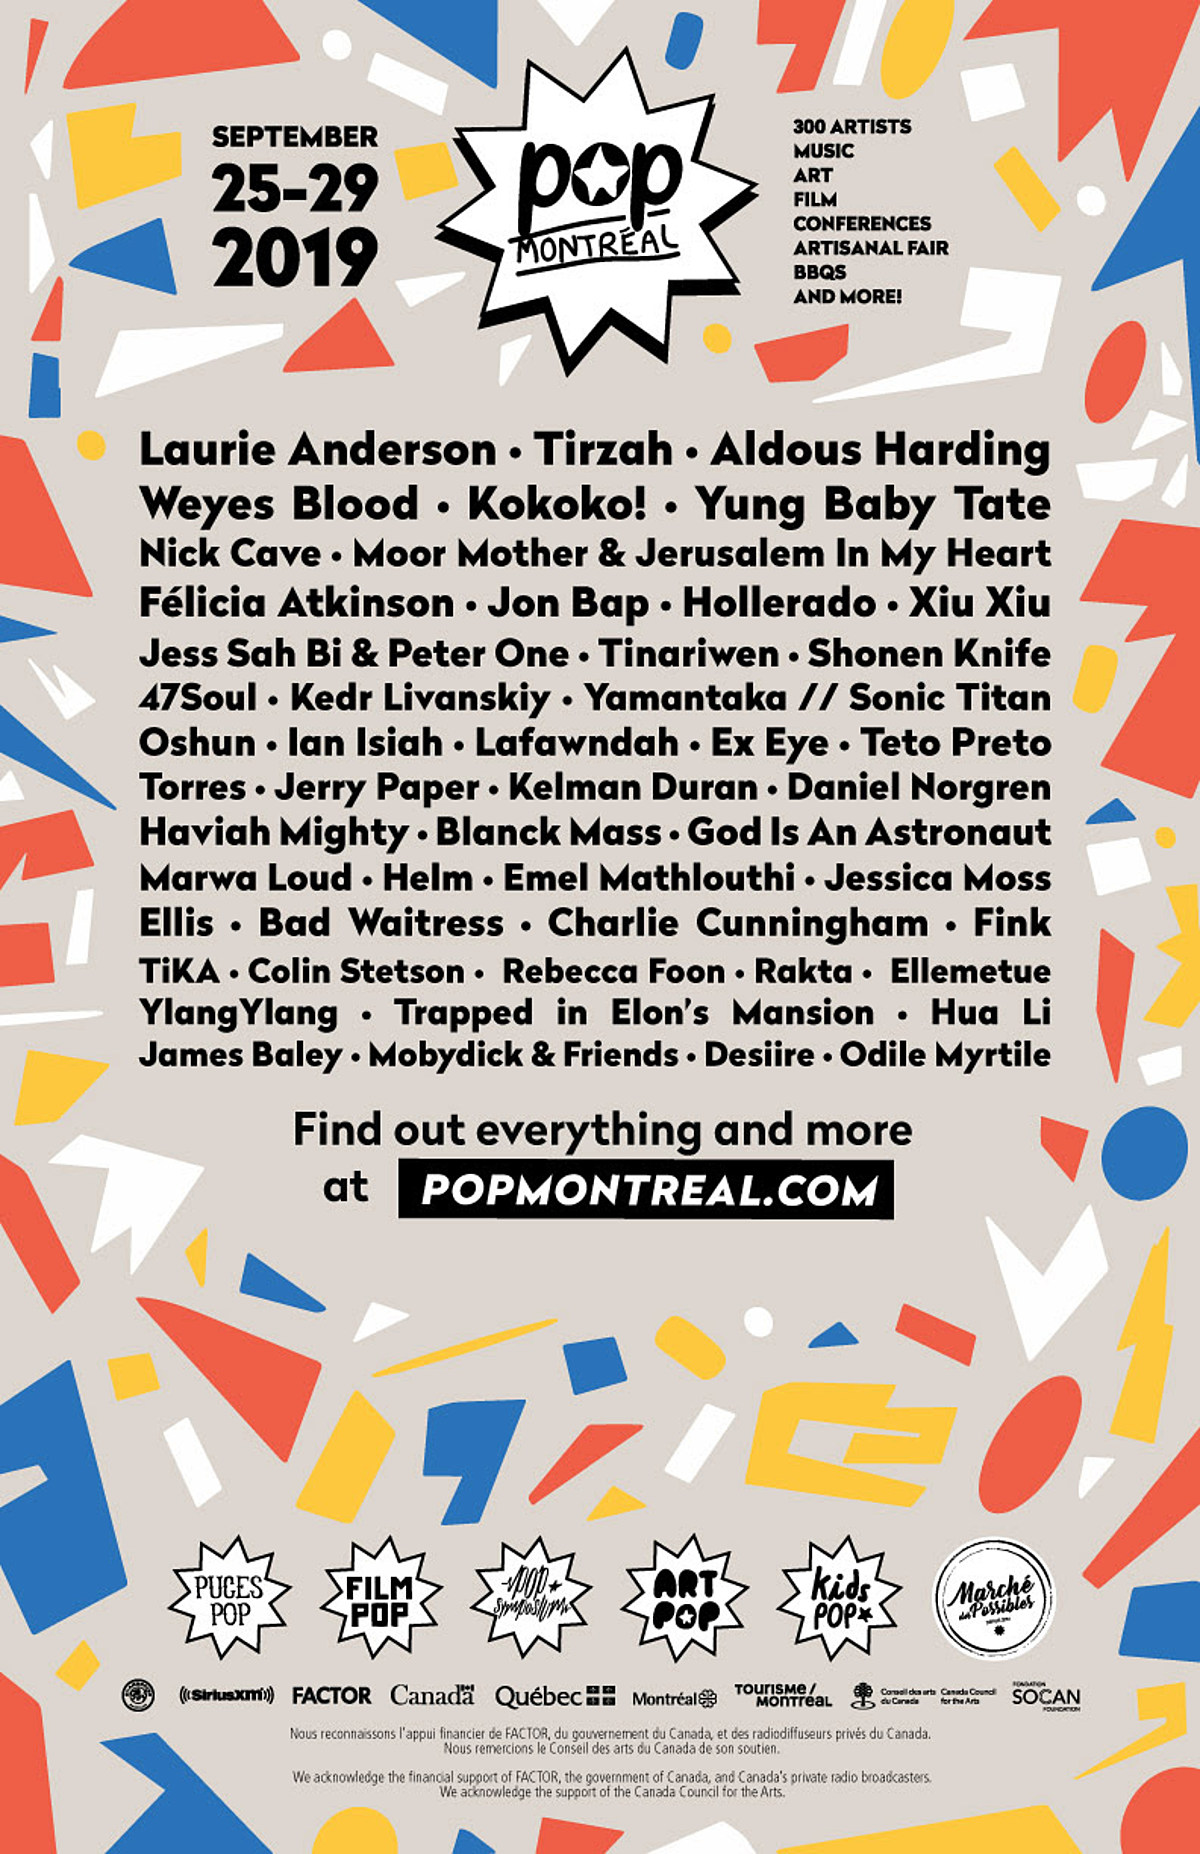 Pop Montreal: 2019 lineup (Nick Cave, Weyes Blood, Laurie Anderson, more)